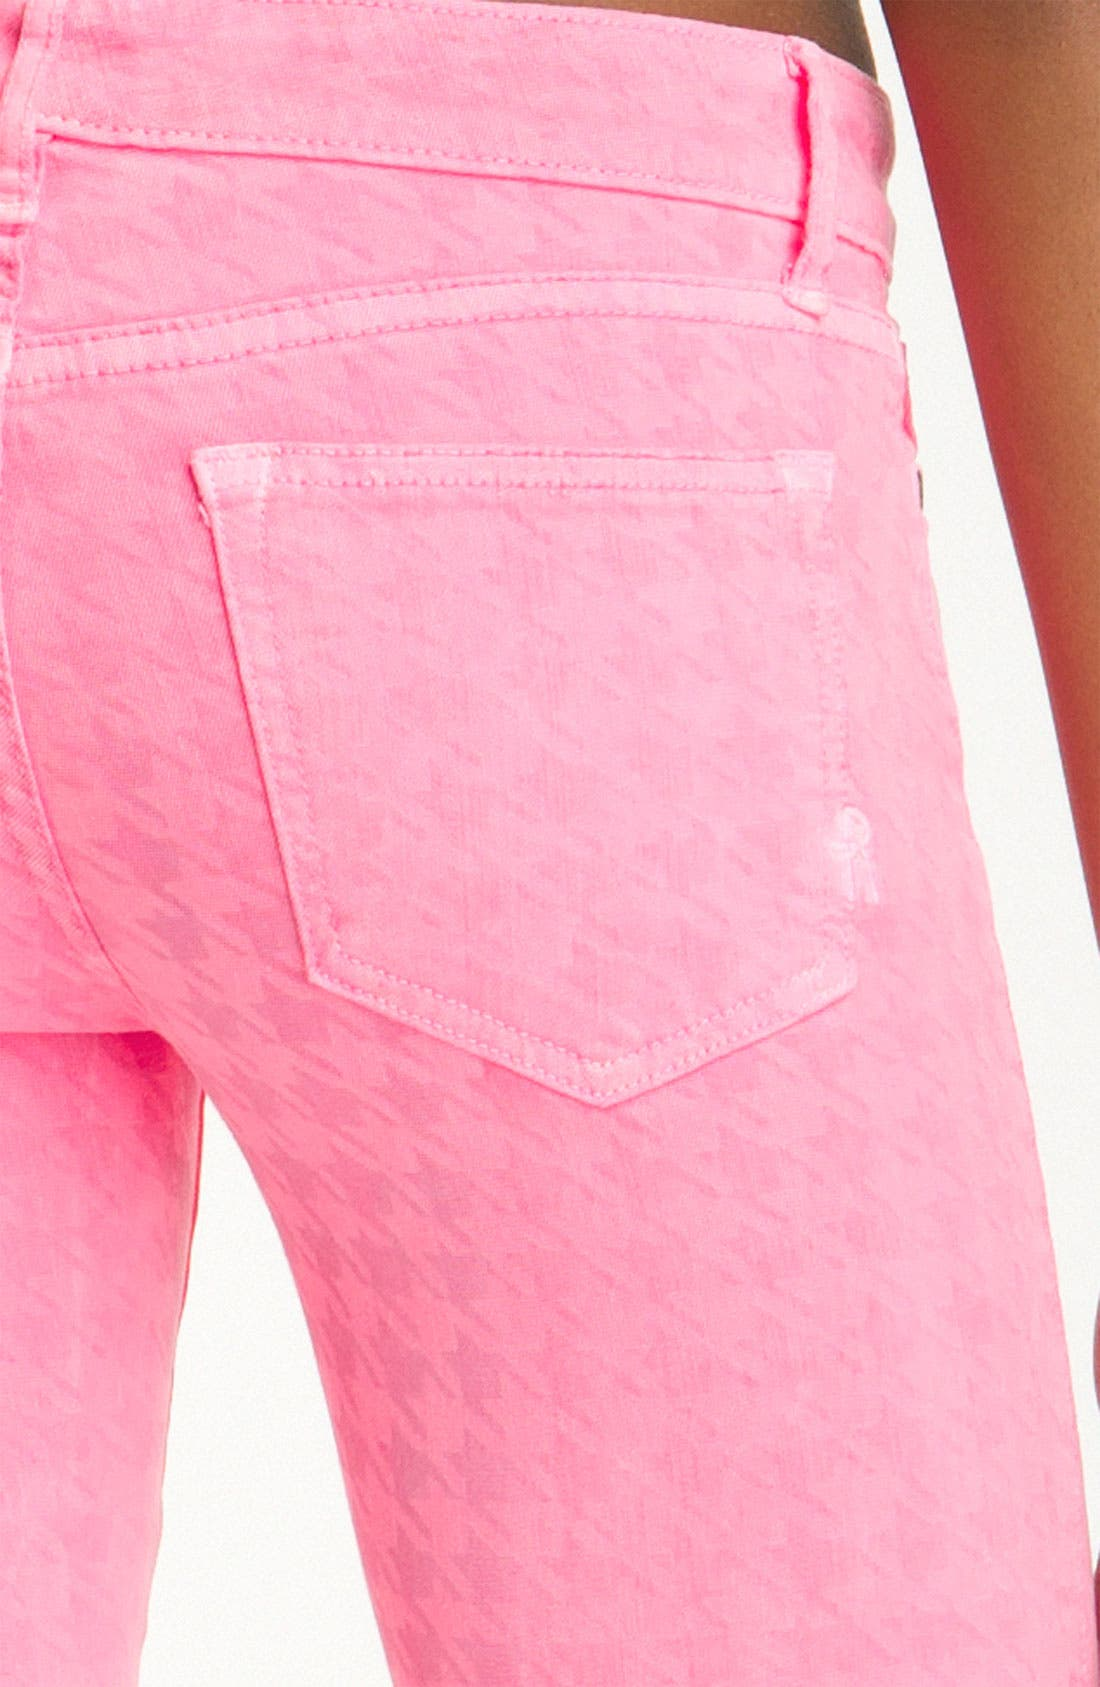 Alternate Image 3  - Rich & Skinny 'Legacy' Houndstooth Print Skinny Jeans (Neon Pink)